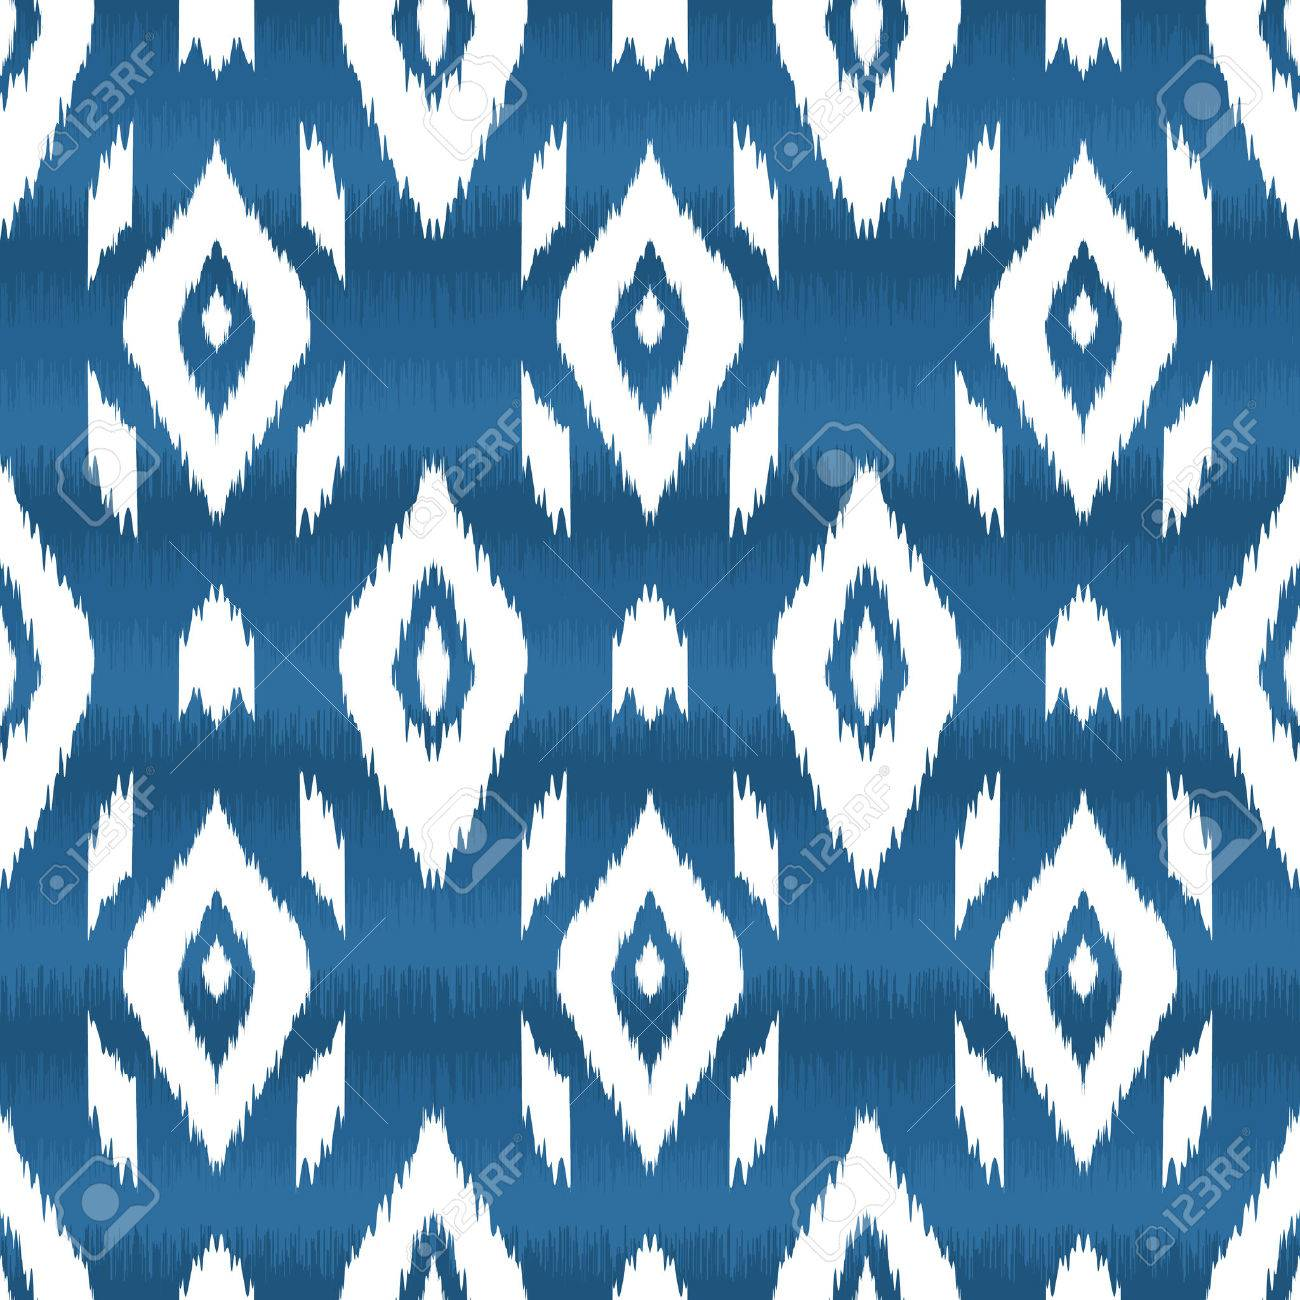 Modern ethnic seamless pattern in bohemian, hipster fashion style. Aztec, navajo, mexican seamless wallpaper. Ikat pattern for textile design, home decor, wrapping paper. Vector background. - 59893688